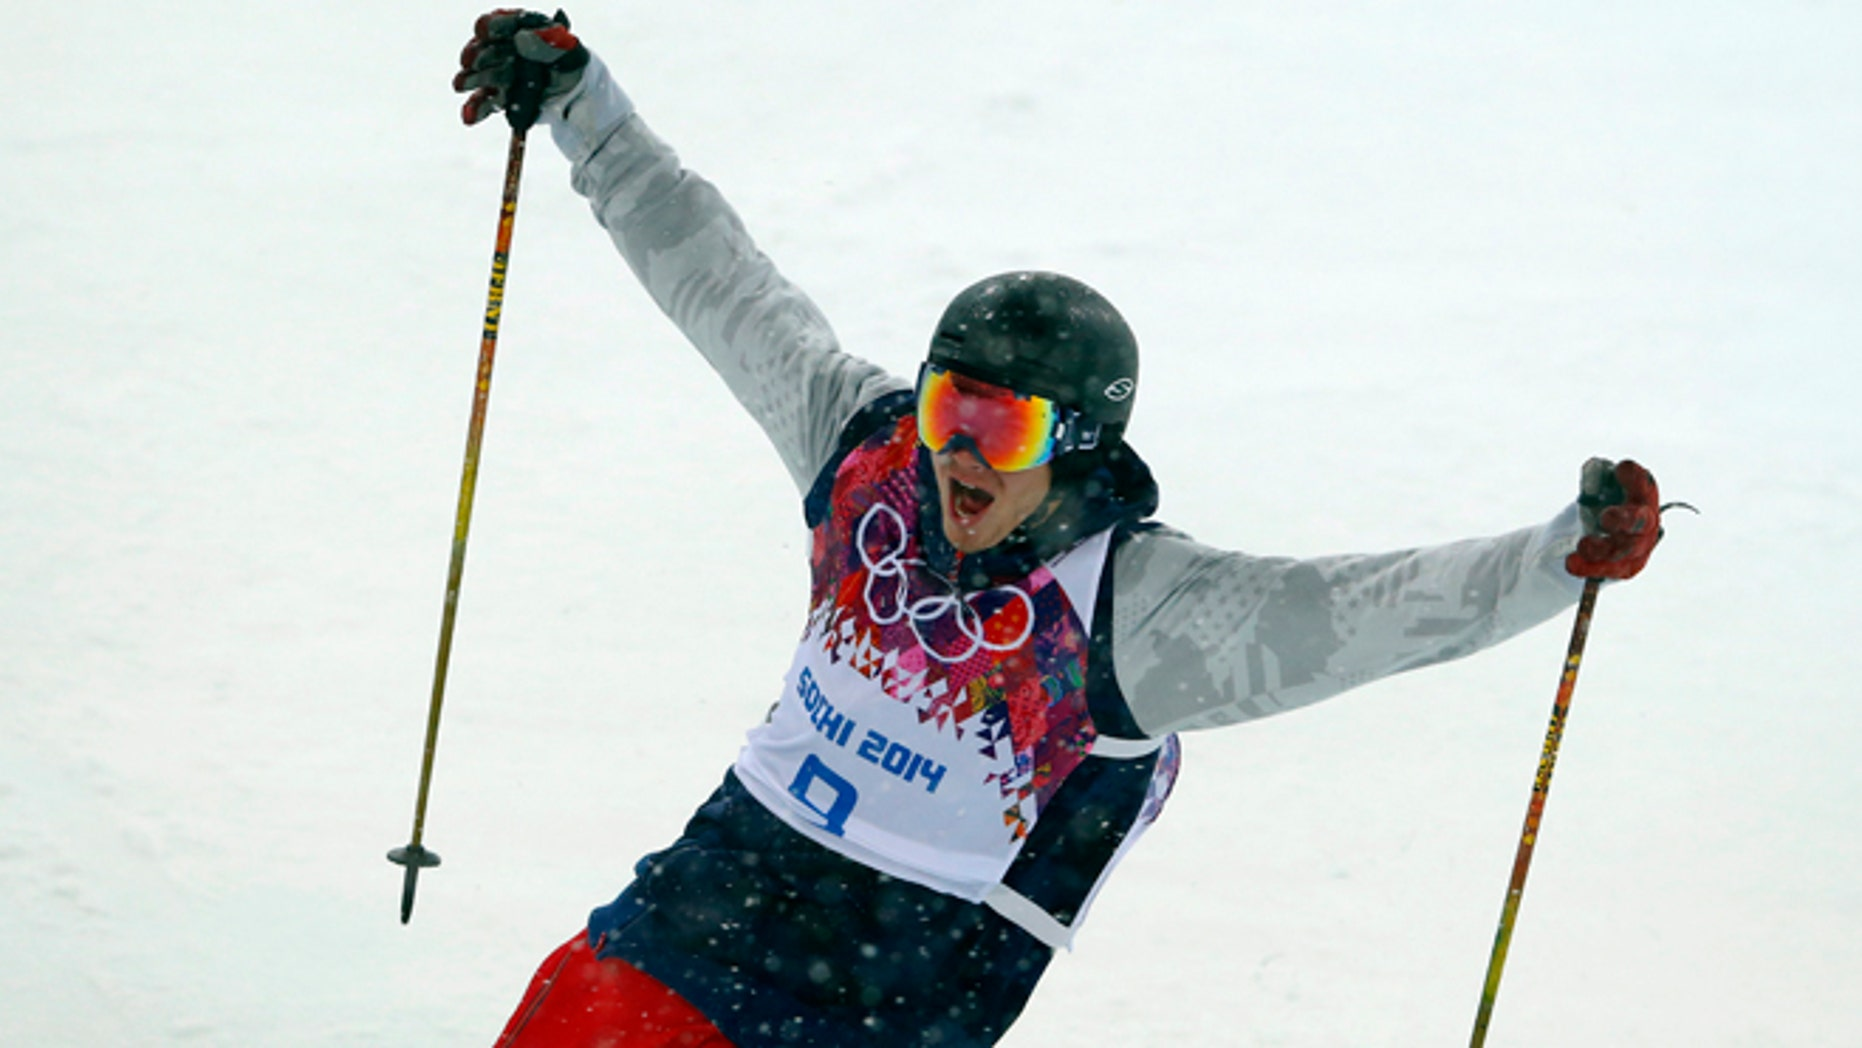 Feb. 18, 2014: David Wise of the United States reacts after a run during the men's ski halfpipe final at the Rosa Khutor Extreme Park, at the 2014 Winter Olympics.